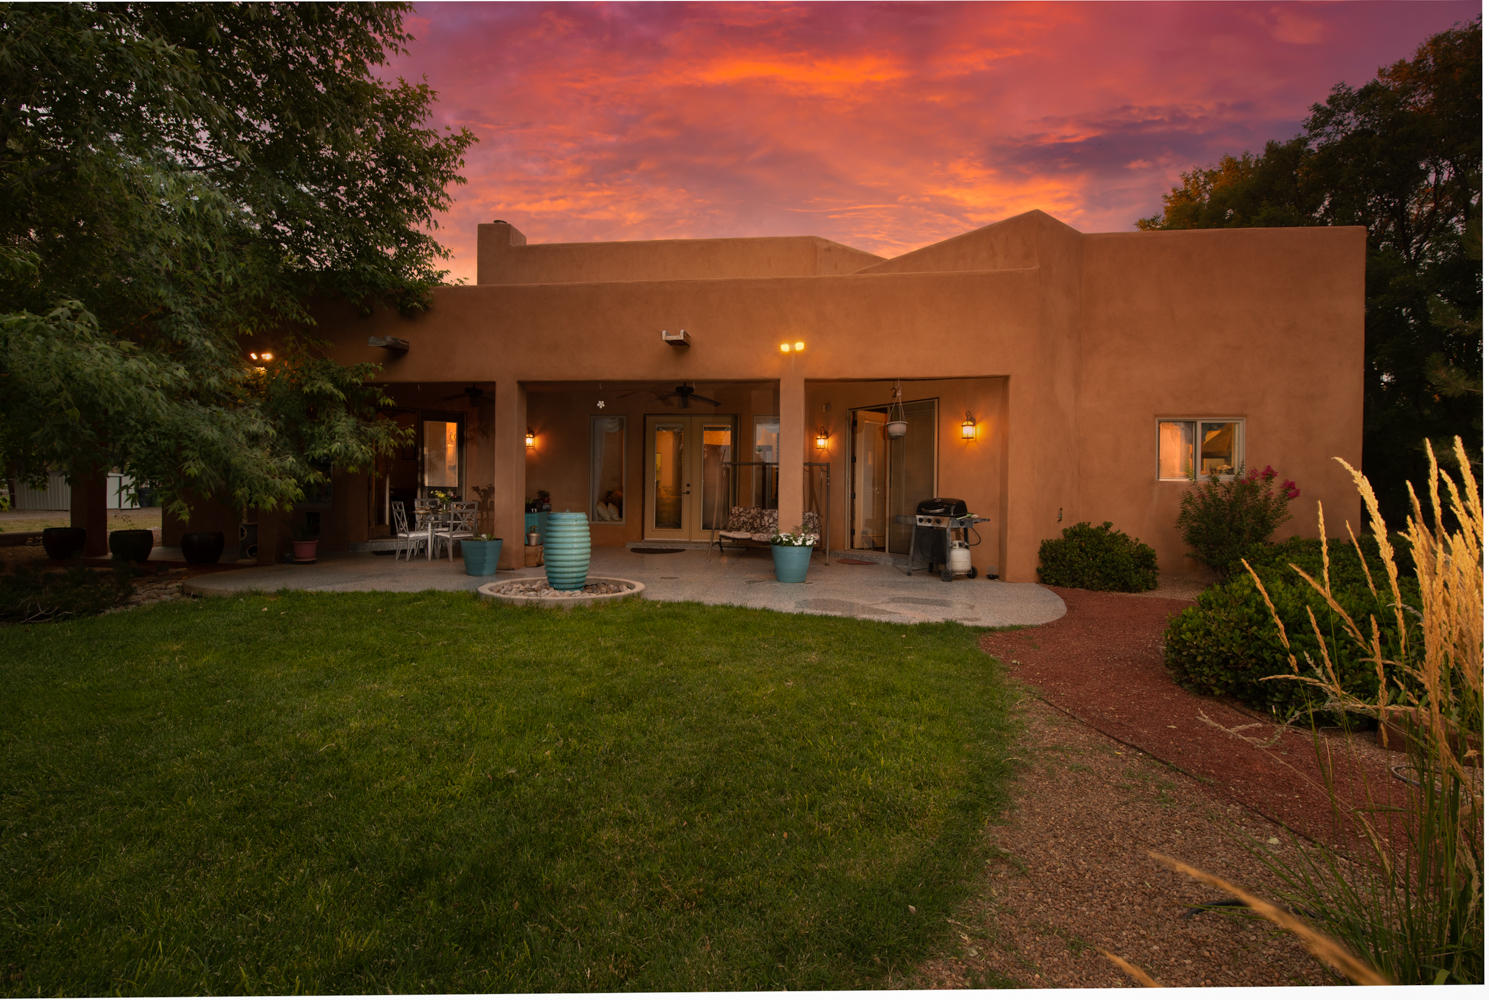 Oasis in the desert!  This remarkable home on 3.4 acres is a paradise for you and your animals.  With irrigation/water rights, and pole fencing all around. the property is ready for all.Enter through a cozy, fireplaced courtyard to a home where architectural details abound.  The exquisite LR  has cathedral ceilings with tongue-in-groove detailing, a soaring fireplace and large custom windows. The Wolf appliances, in this dreamy kitchen, include Sub Zero Refrigerator, Convection Oven, Cook Top, Warming Drawer and a pot filler!  The Master Bath has a corner jetted tub as well as a magnificent walk in shower.  The Master Bedroom boasts another custom Fireplace with entrance to a patio with a water feature overlooking the land.Come experience  beauty and tranquility in your new home!!!